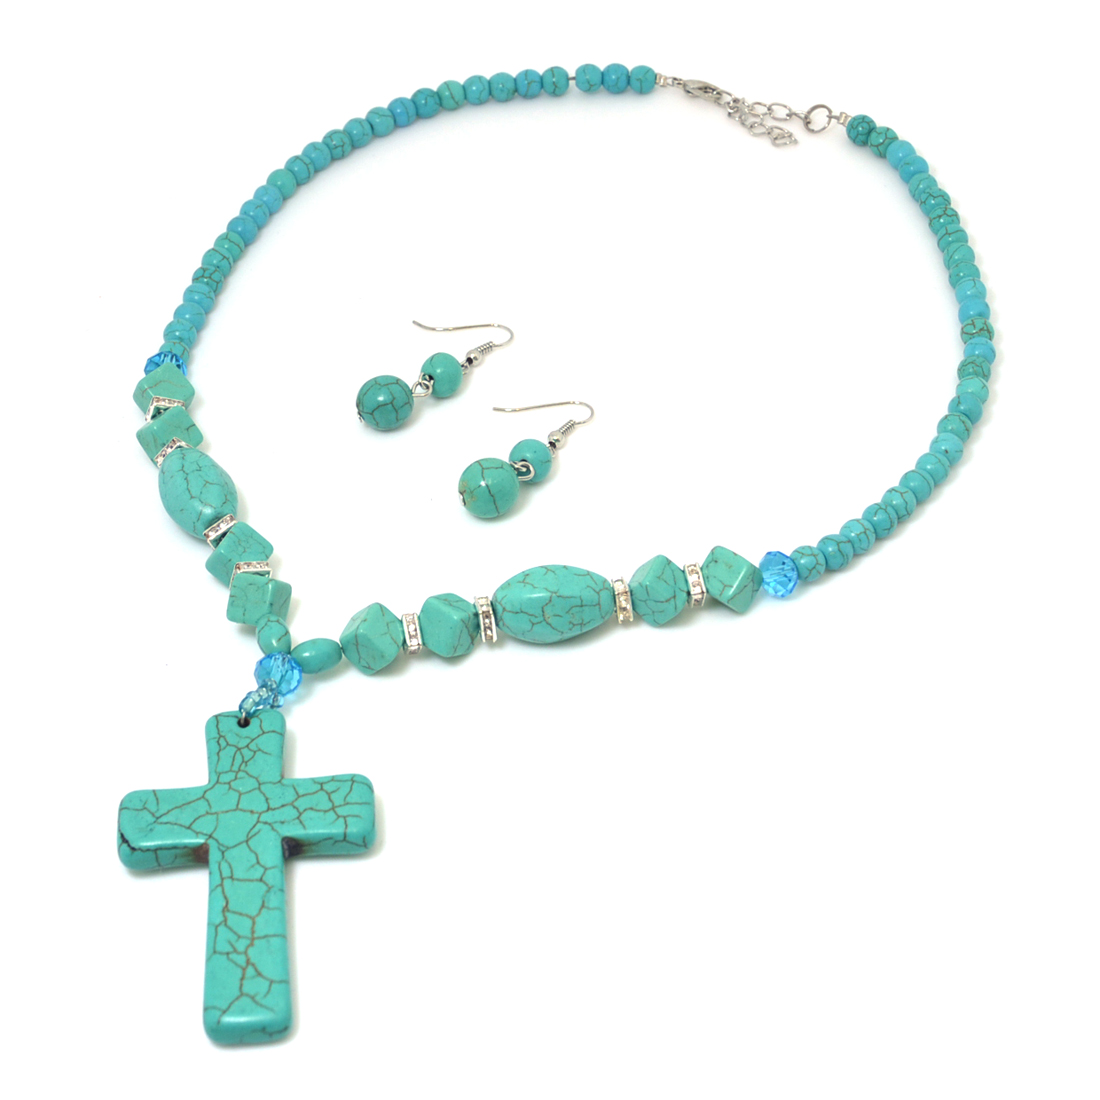 Faith-Inspired Turquoise Pendant with Silver-Tone Hardware